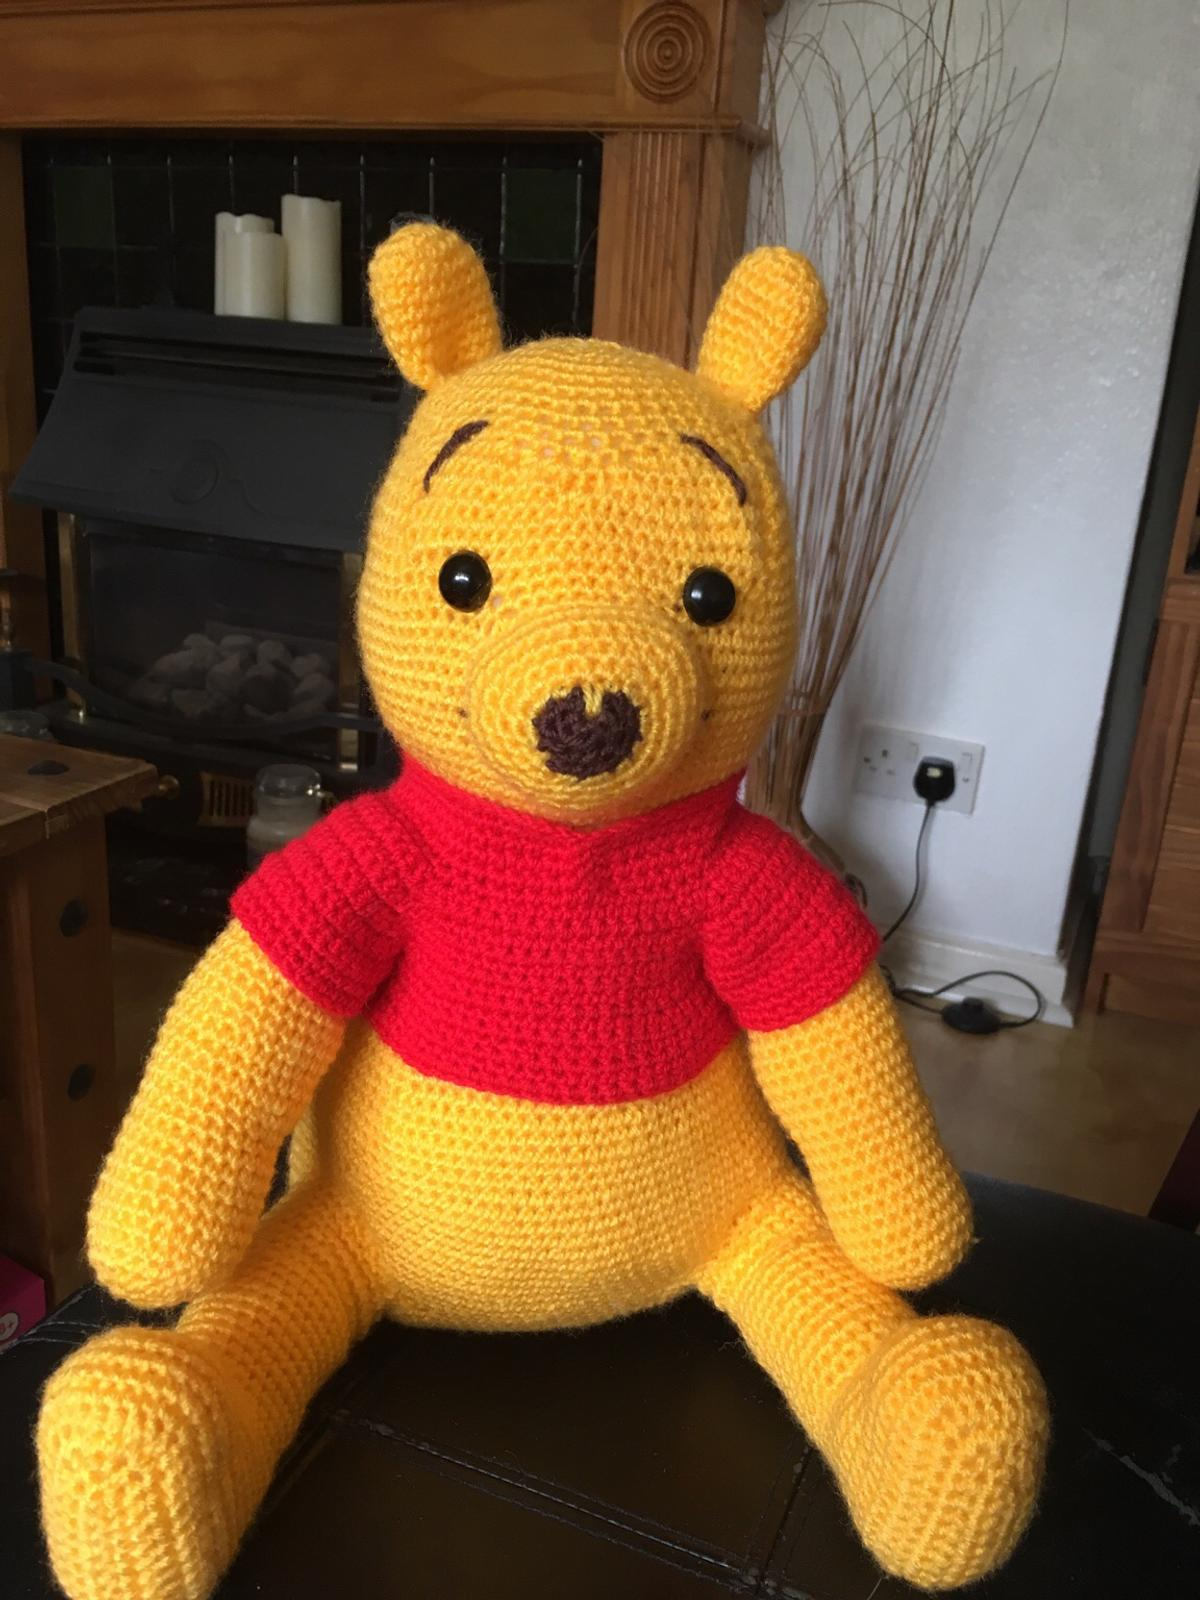 Crochet Large Winnie The Pooh In B14 Birmingham For 1200 For Sale